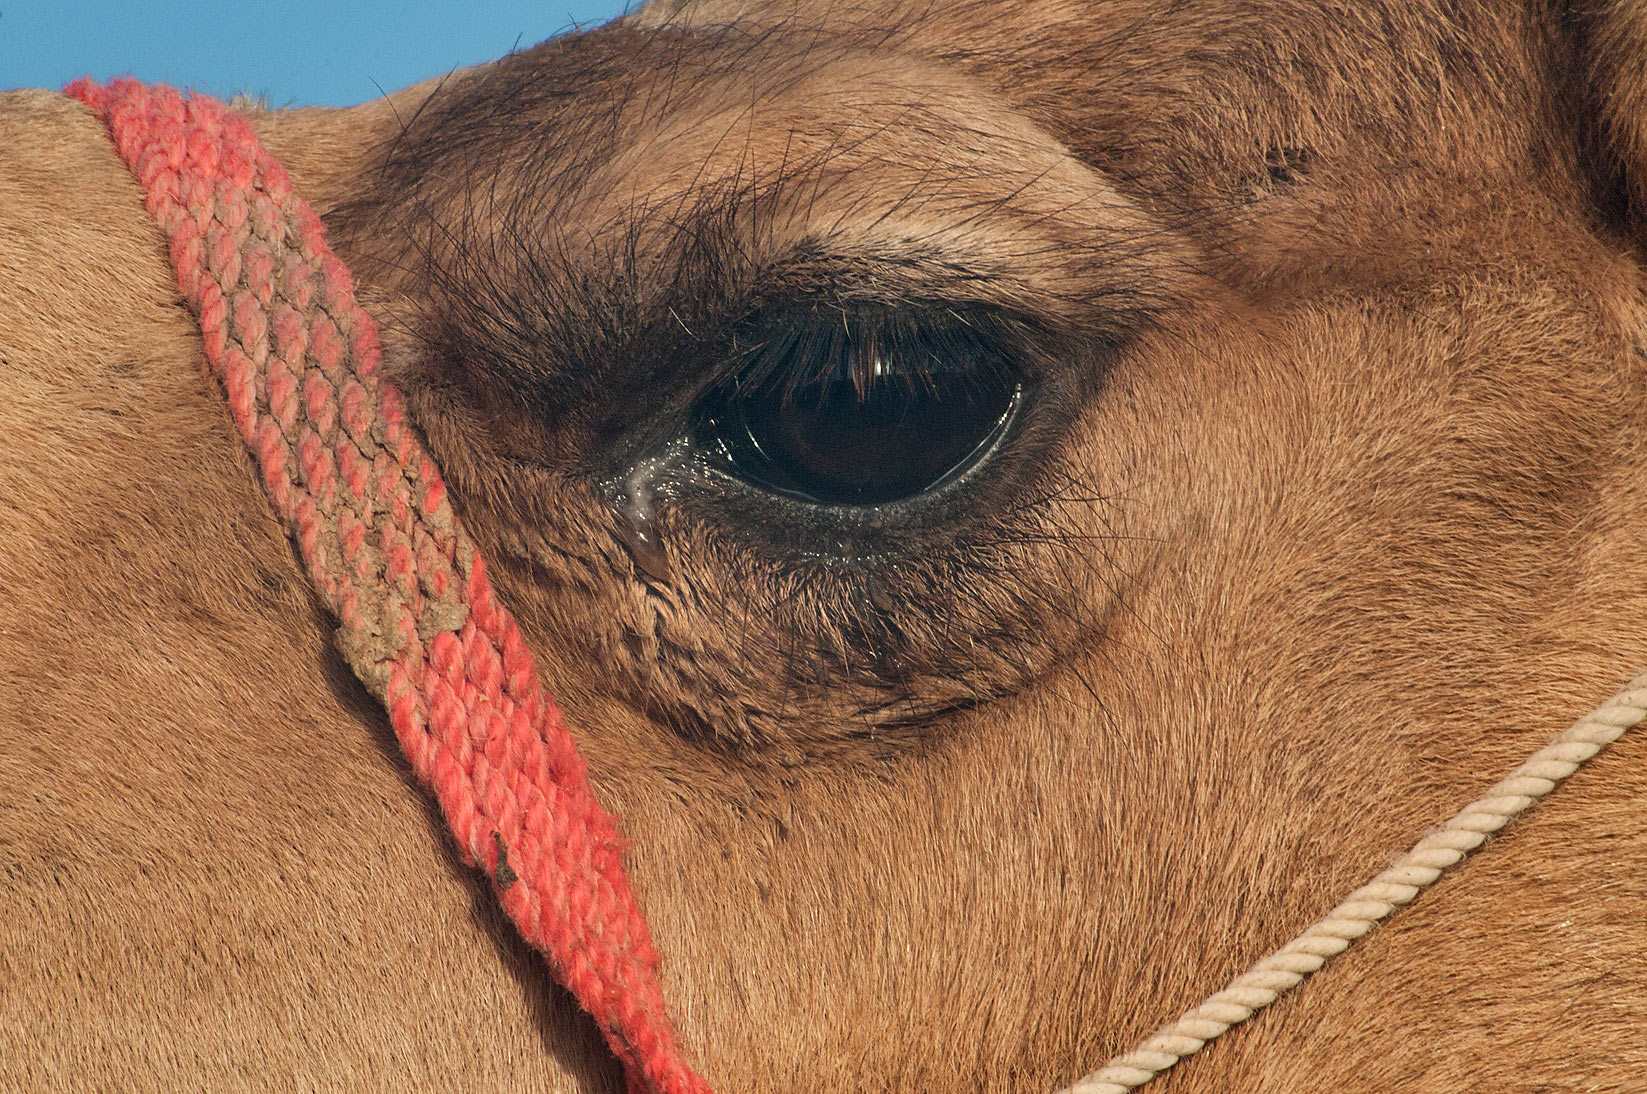 Eye of a camel at Camel Market (Souq) in Wholesale Markets area. Doha, Qatar